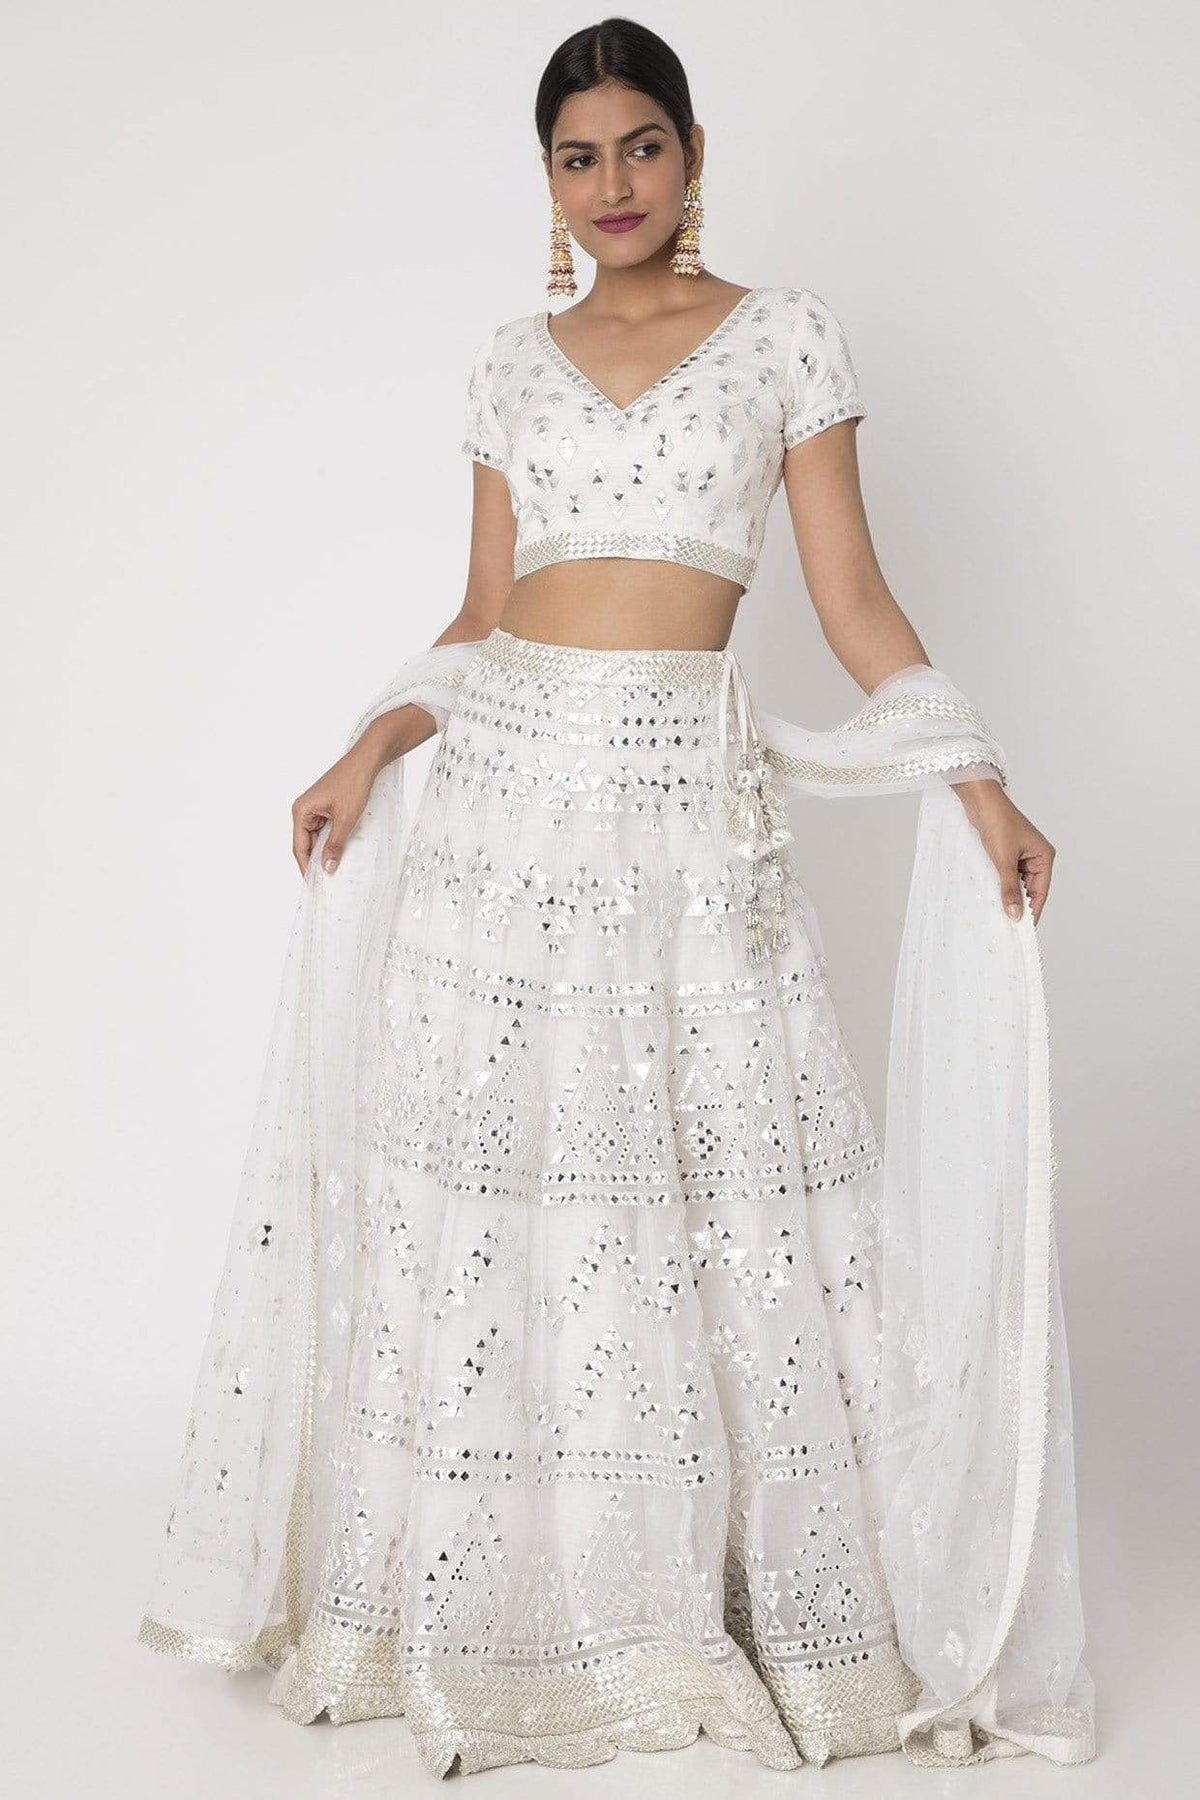 Gopi Viad Light Lehengas White cotton silk lehenga